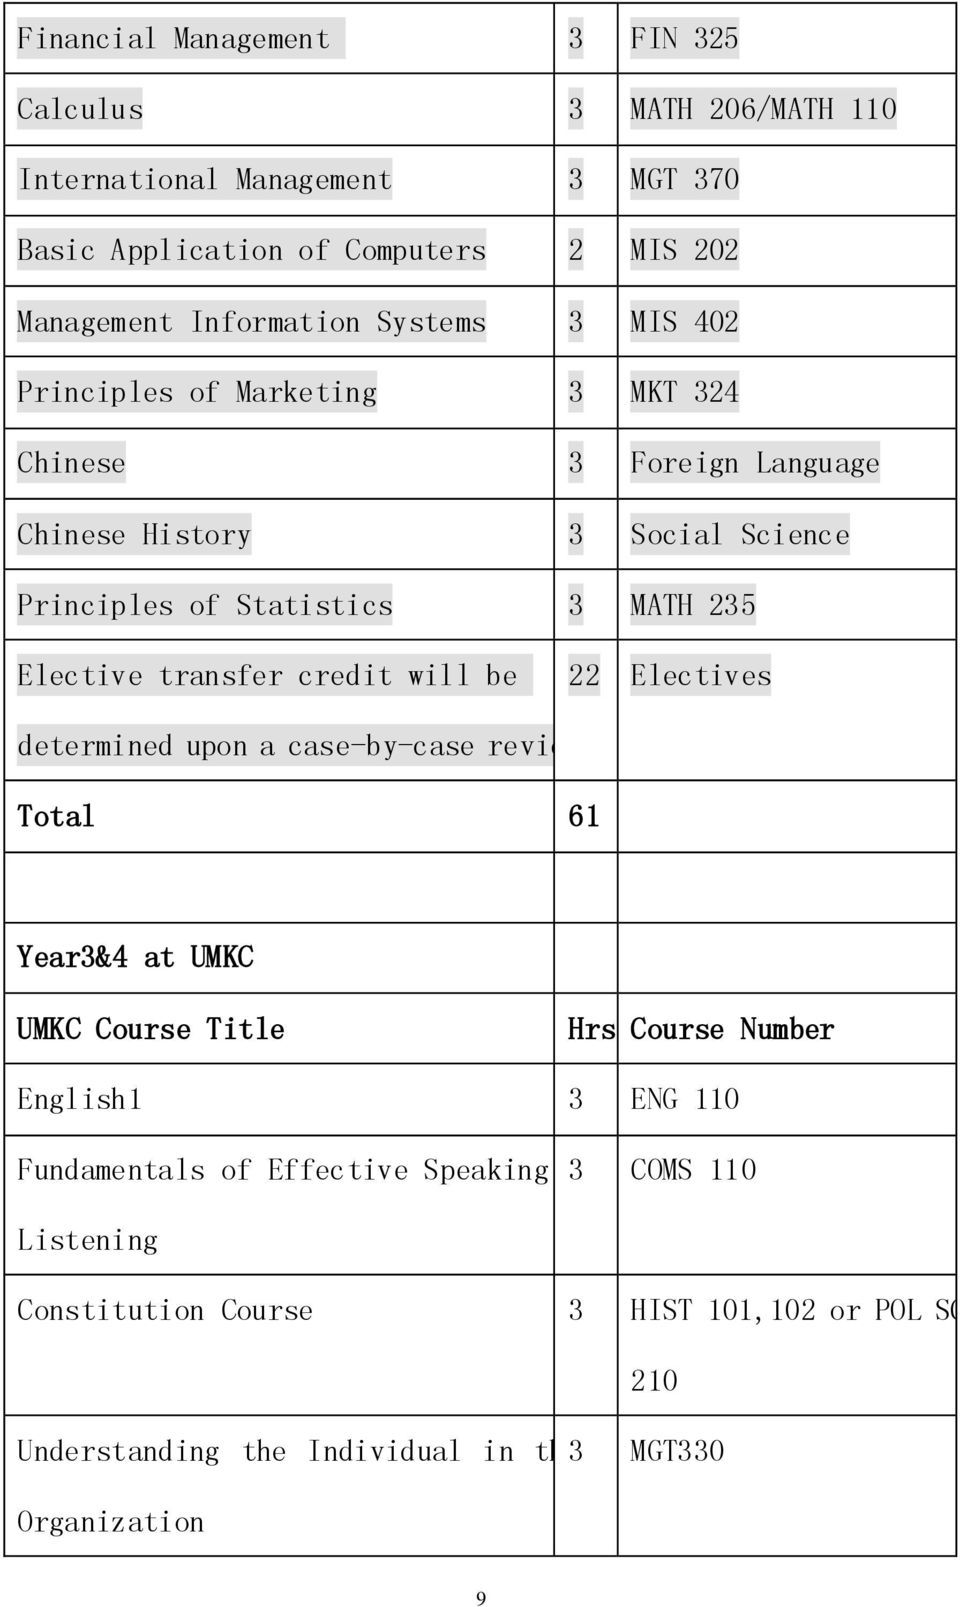 transfer credit will be 22 Electives determined upon a case-by-case review Total 61 Year3&4 at UMKC UMKC Course Title Hrs Course Number English1 3 ENG 110